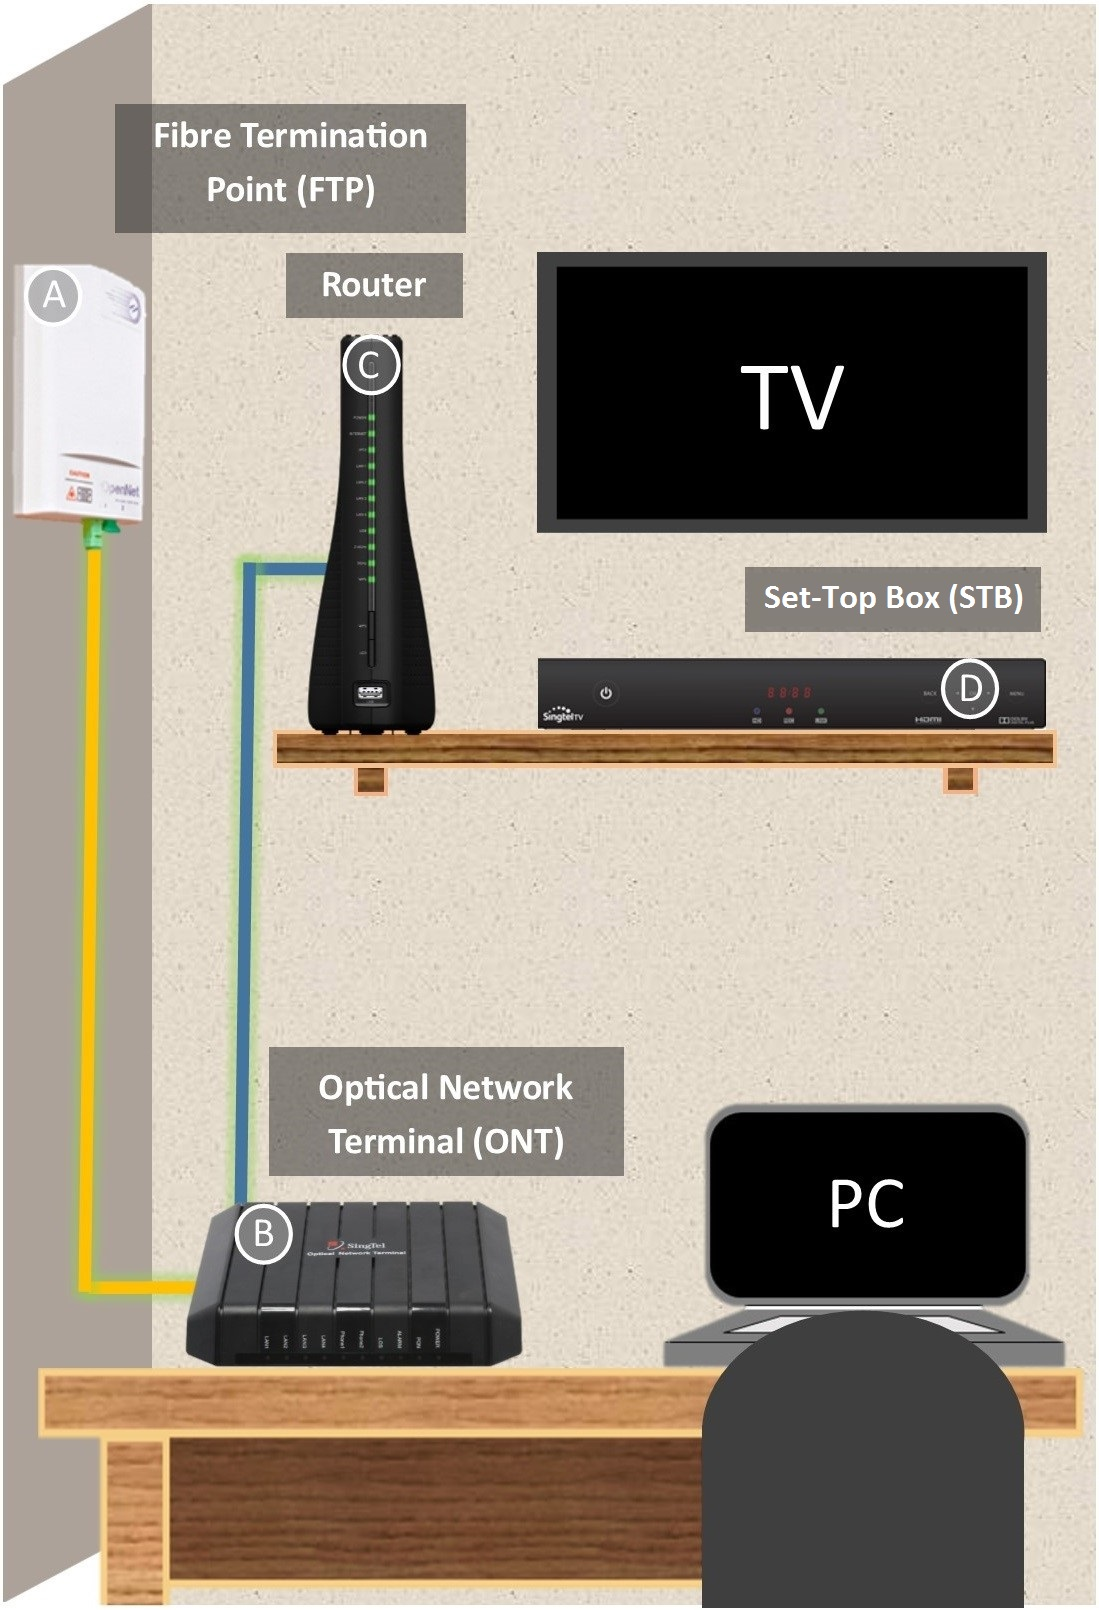 Unable To Make Or Receive Calls Home Telephone Wiring Block Terminal Typical Internet Layout